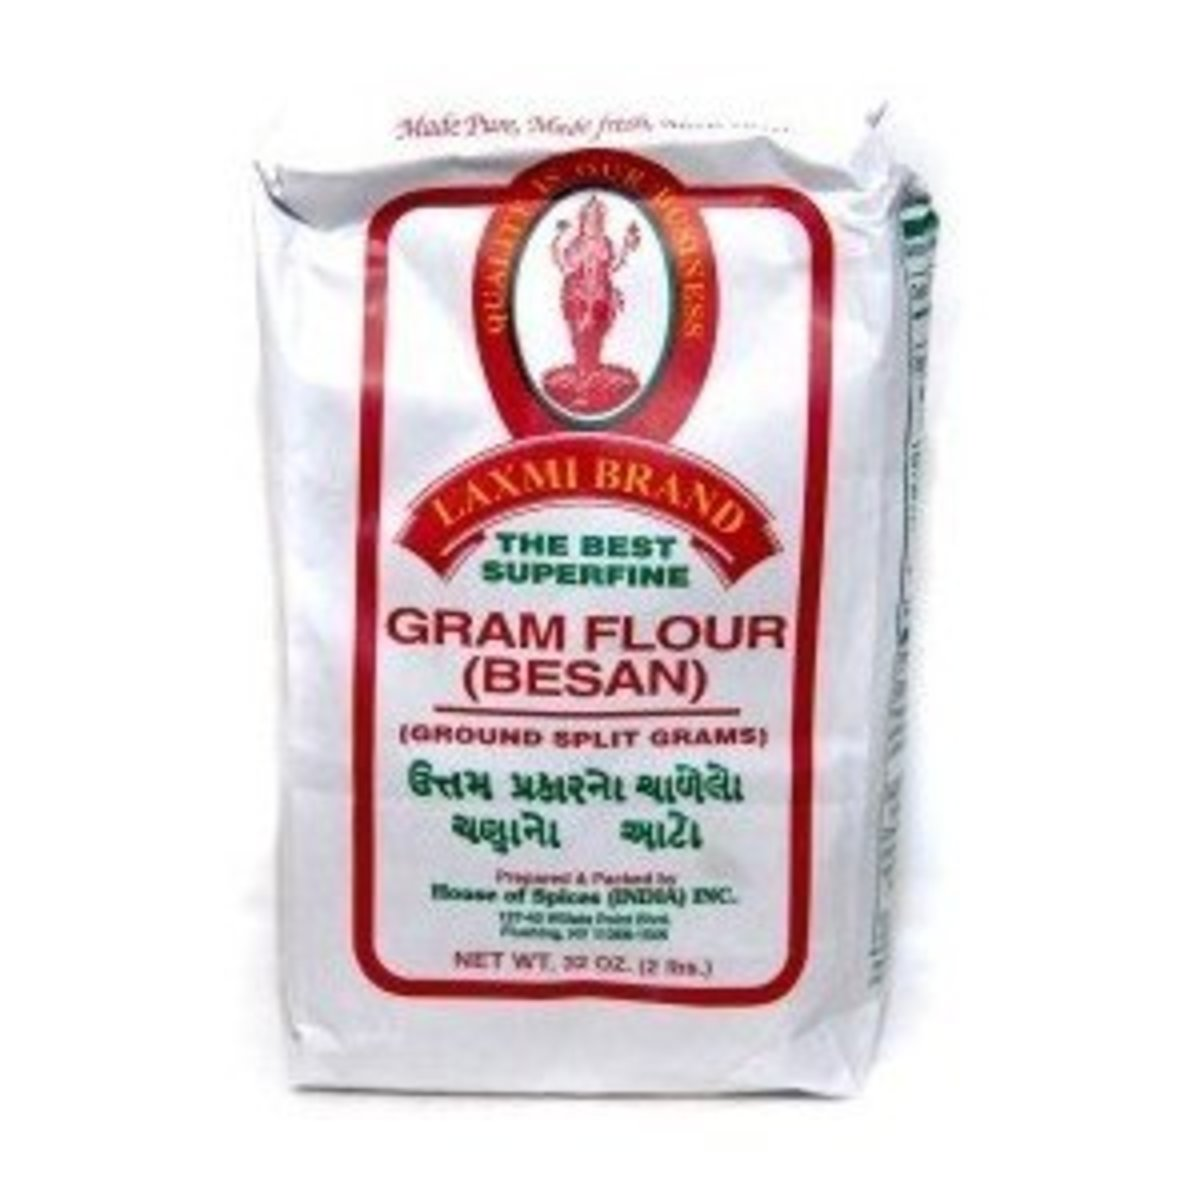 Besan or gram flour is commonly used in Indian dishes